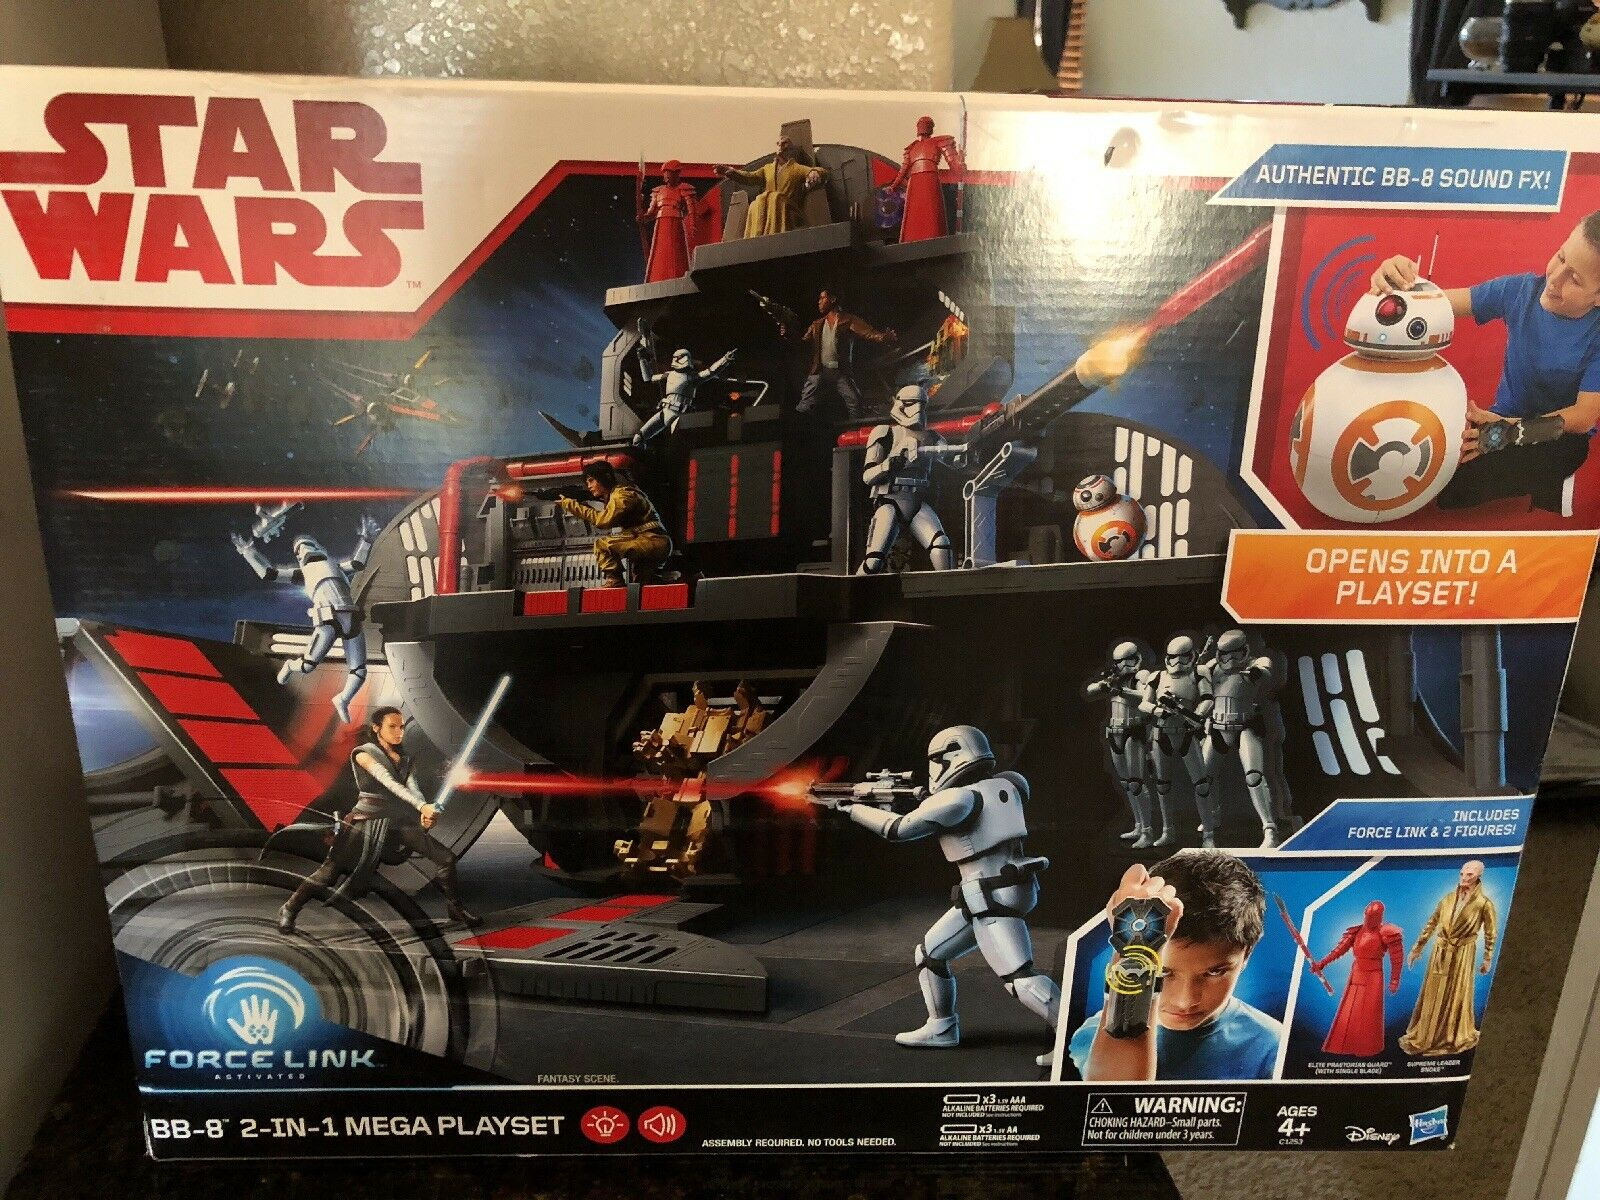 NEW    Sealed Star Wars Force Link BB 8 2-in-1 Mega Playset